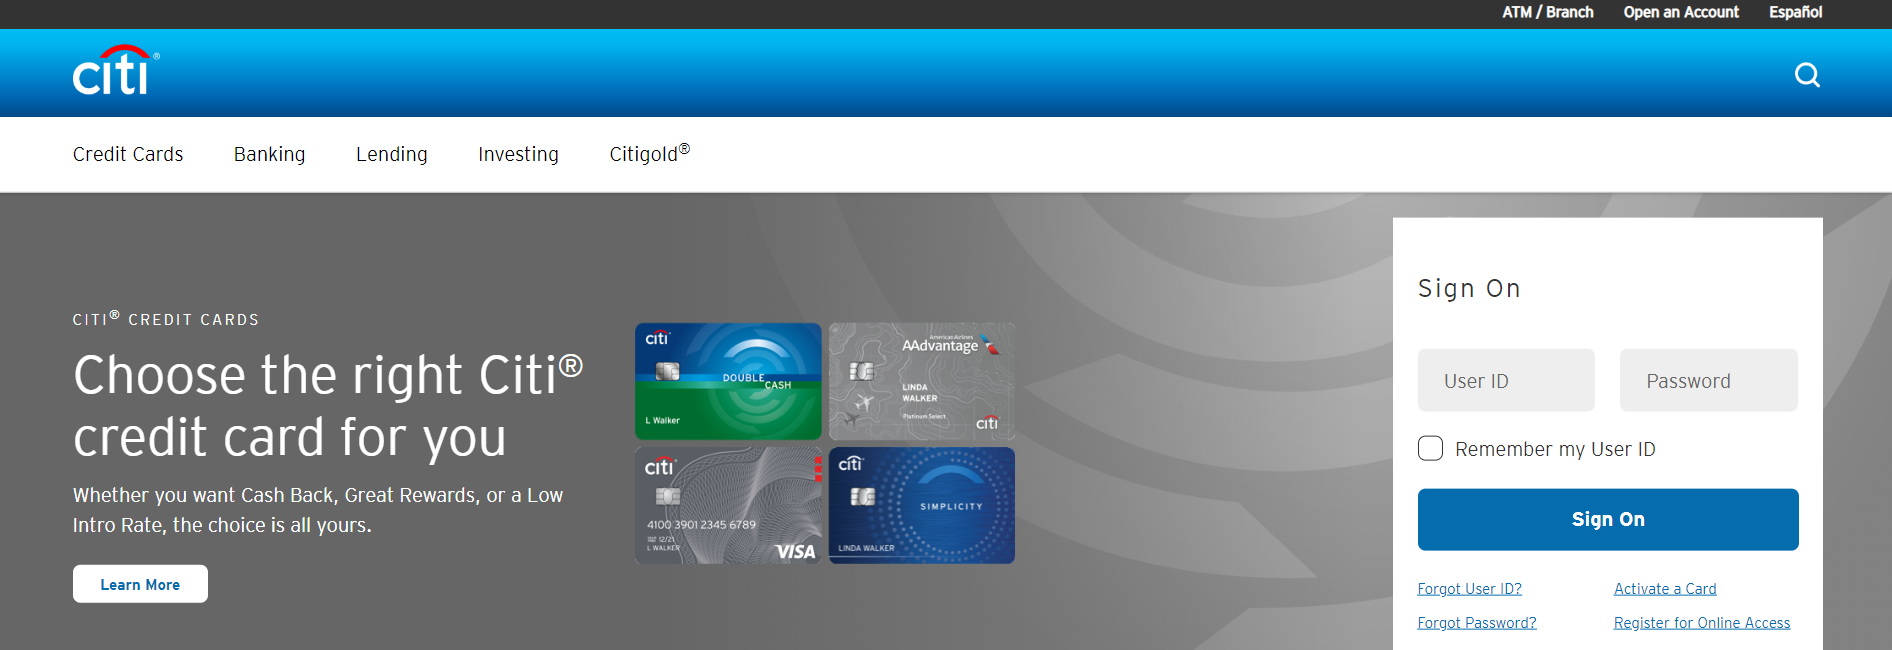 Login page of Citi Bank